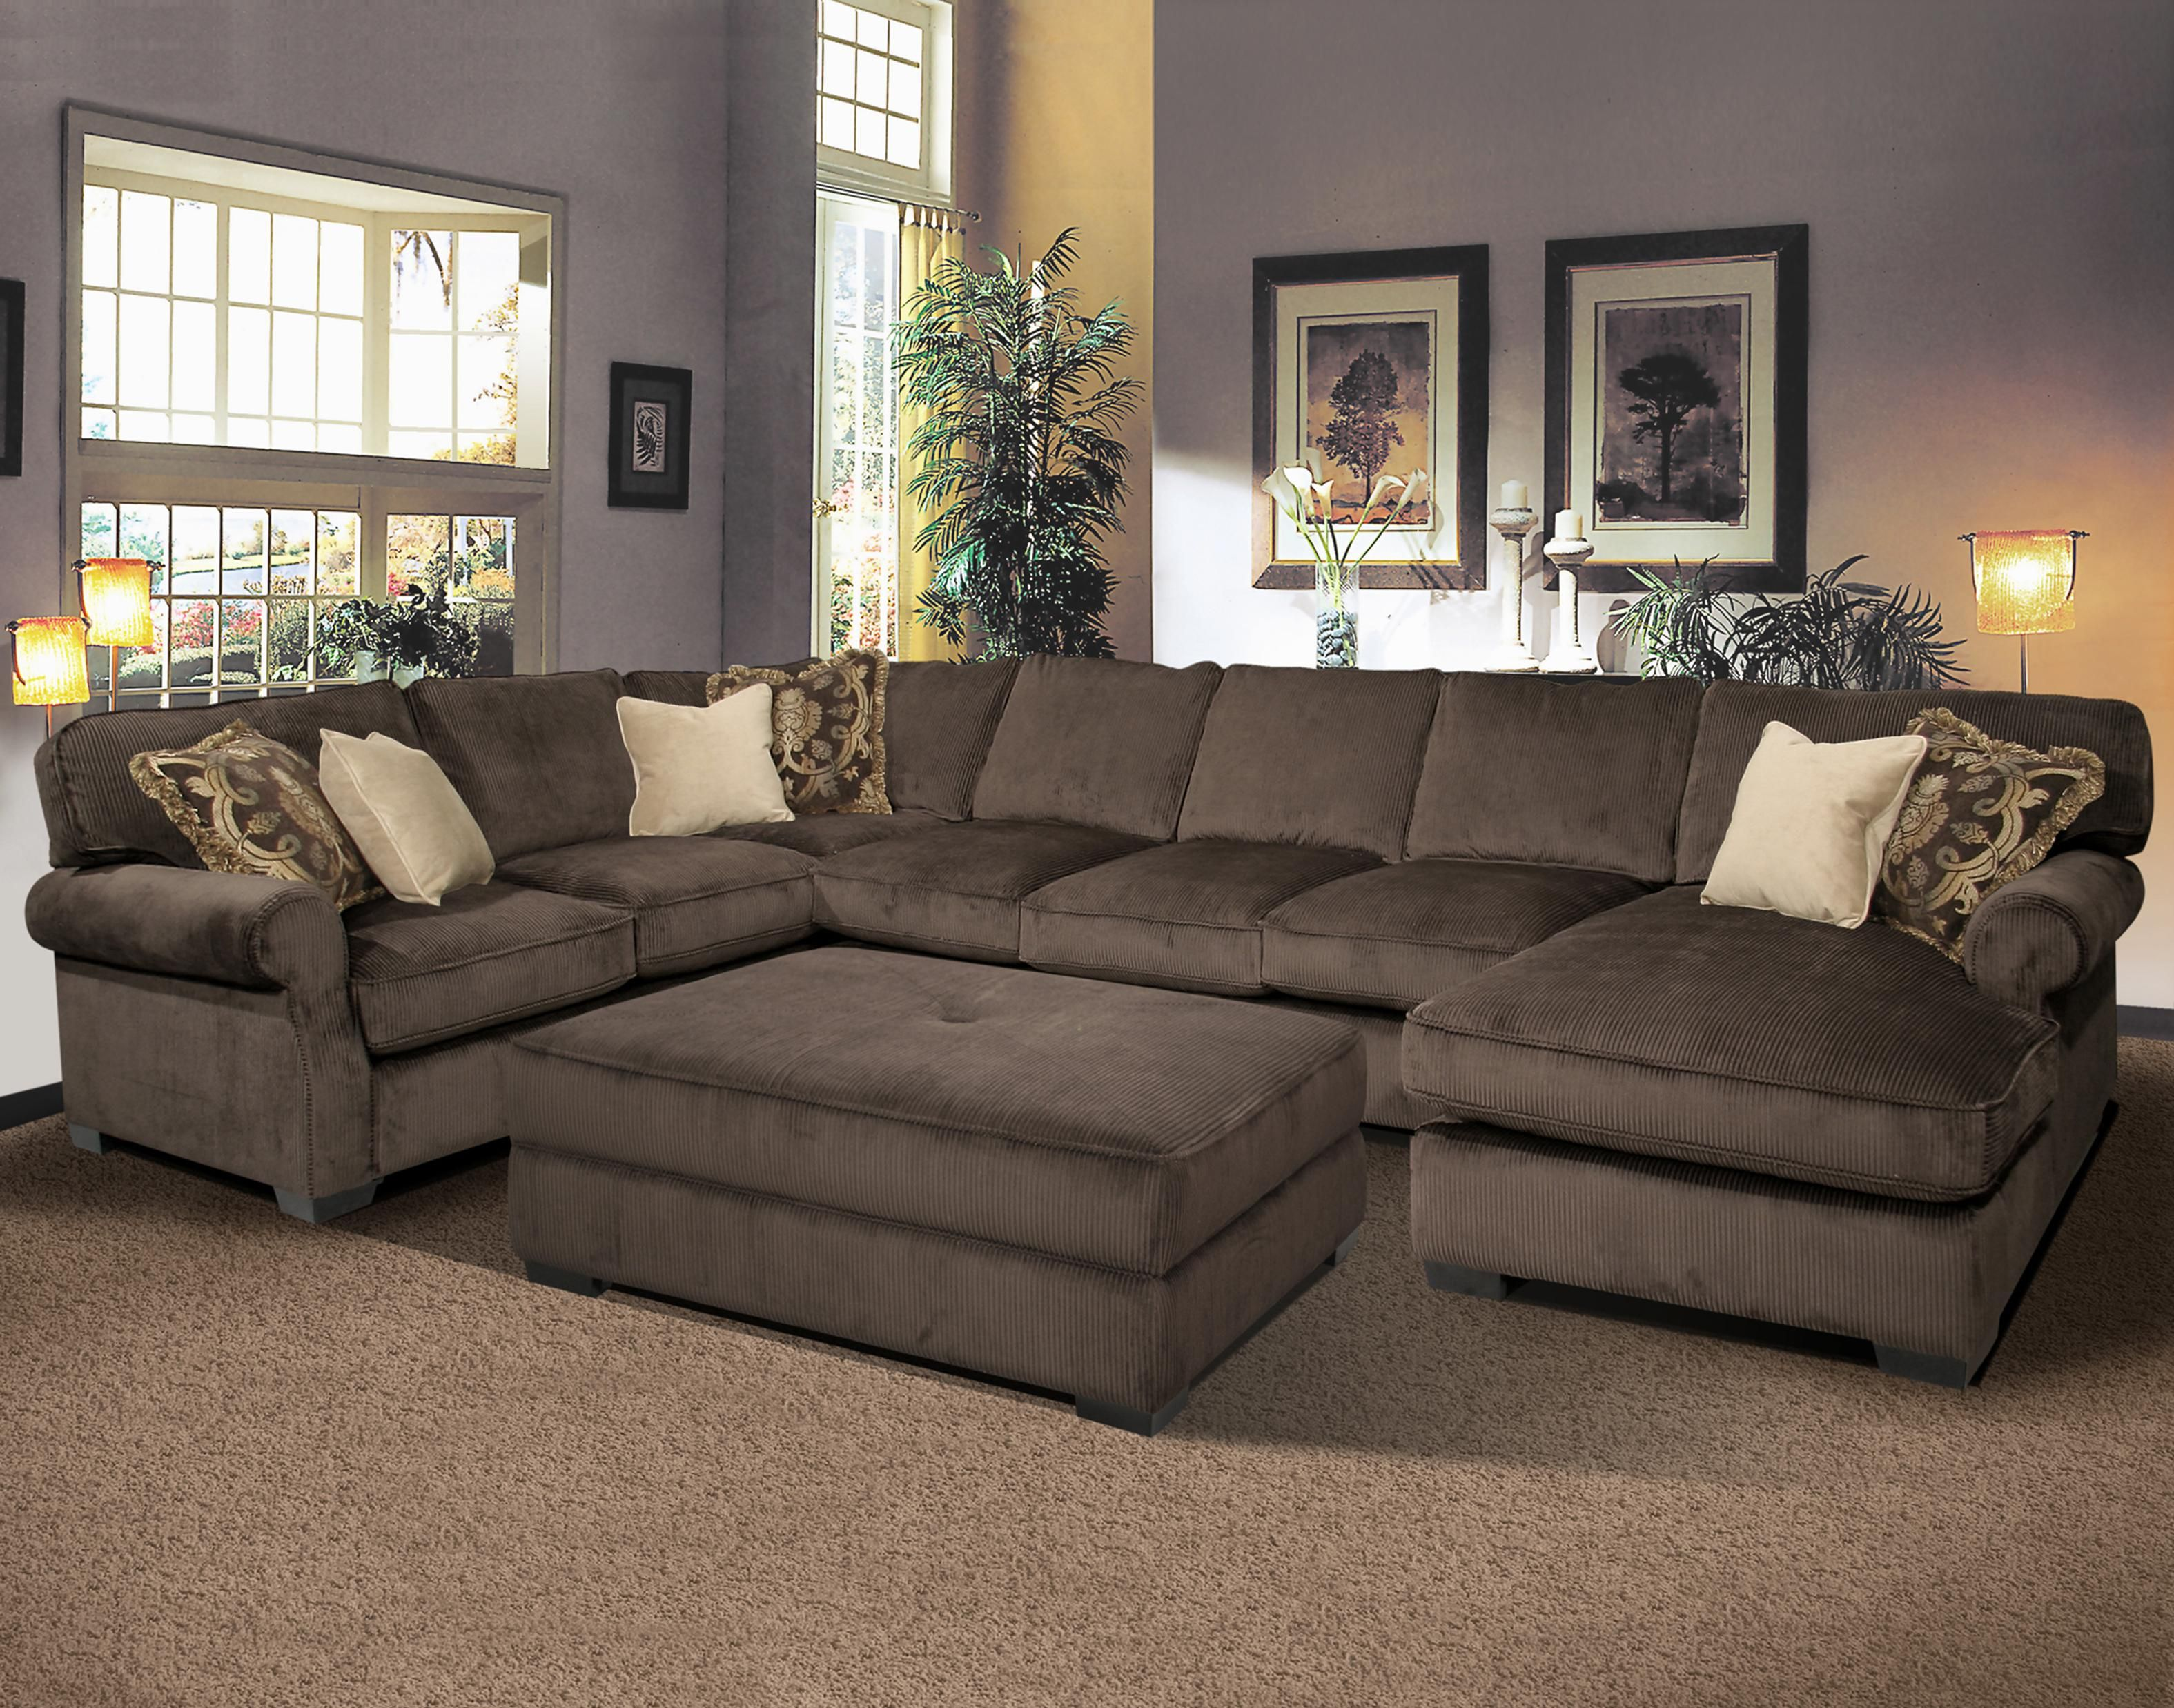 Big Sofa York Hersteller Big And Comfy Grand Island Large 7 Seat Sectional Sofa